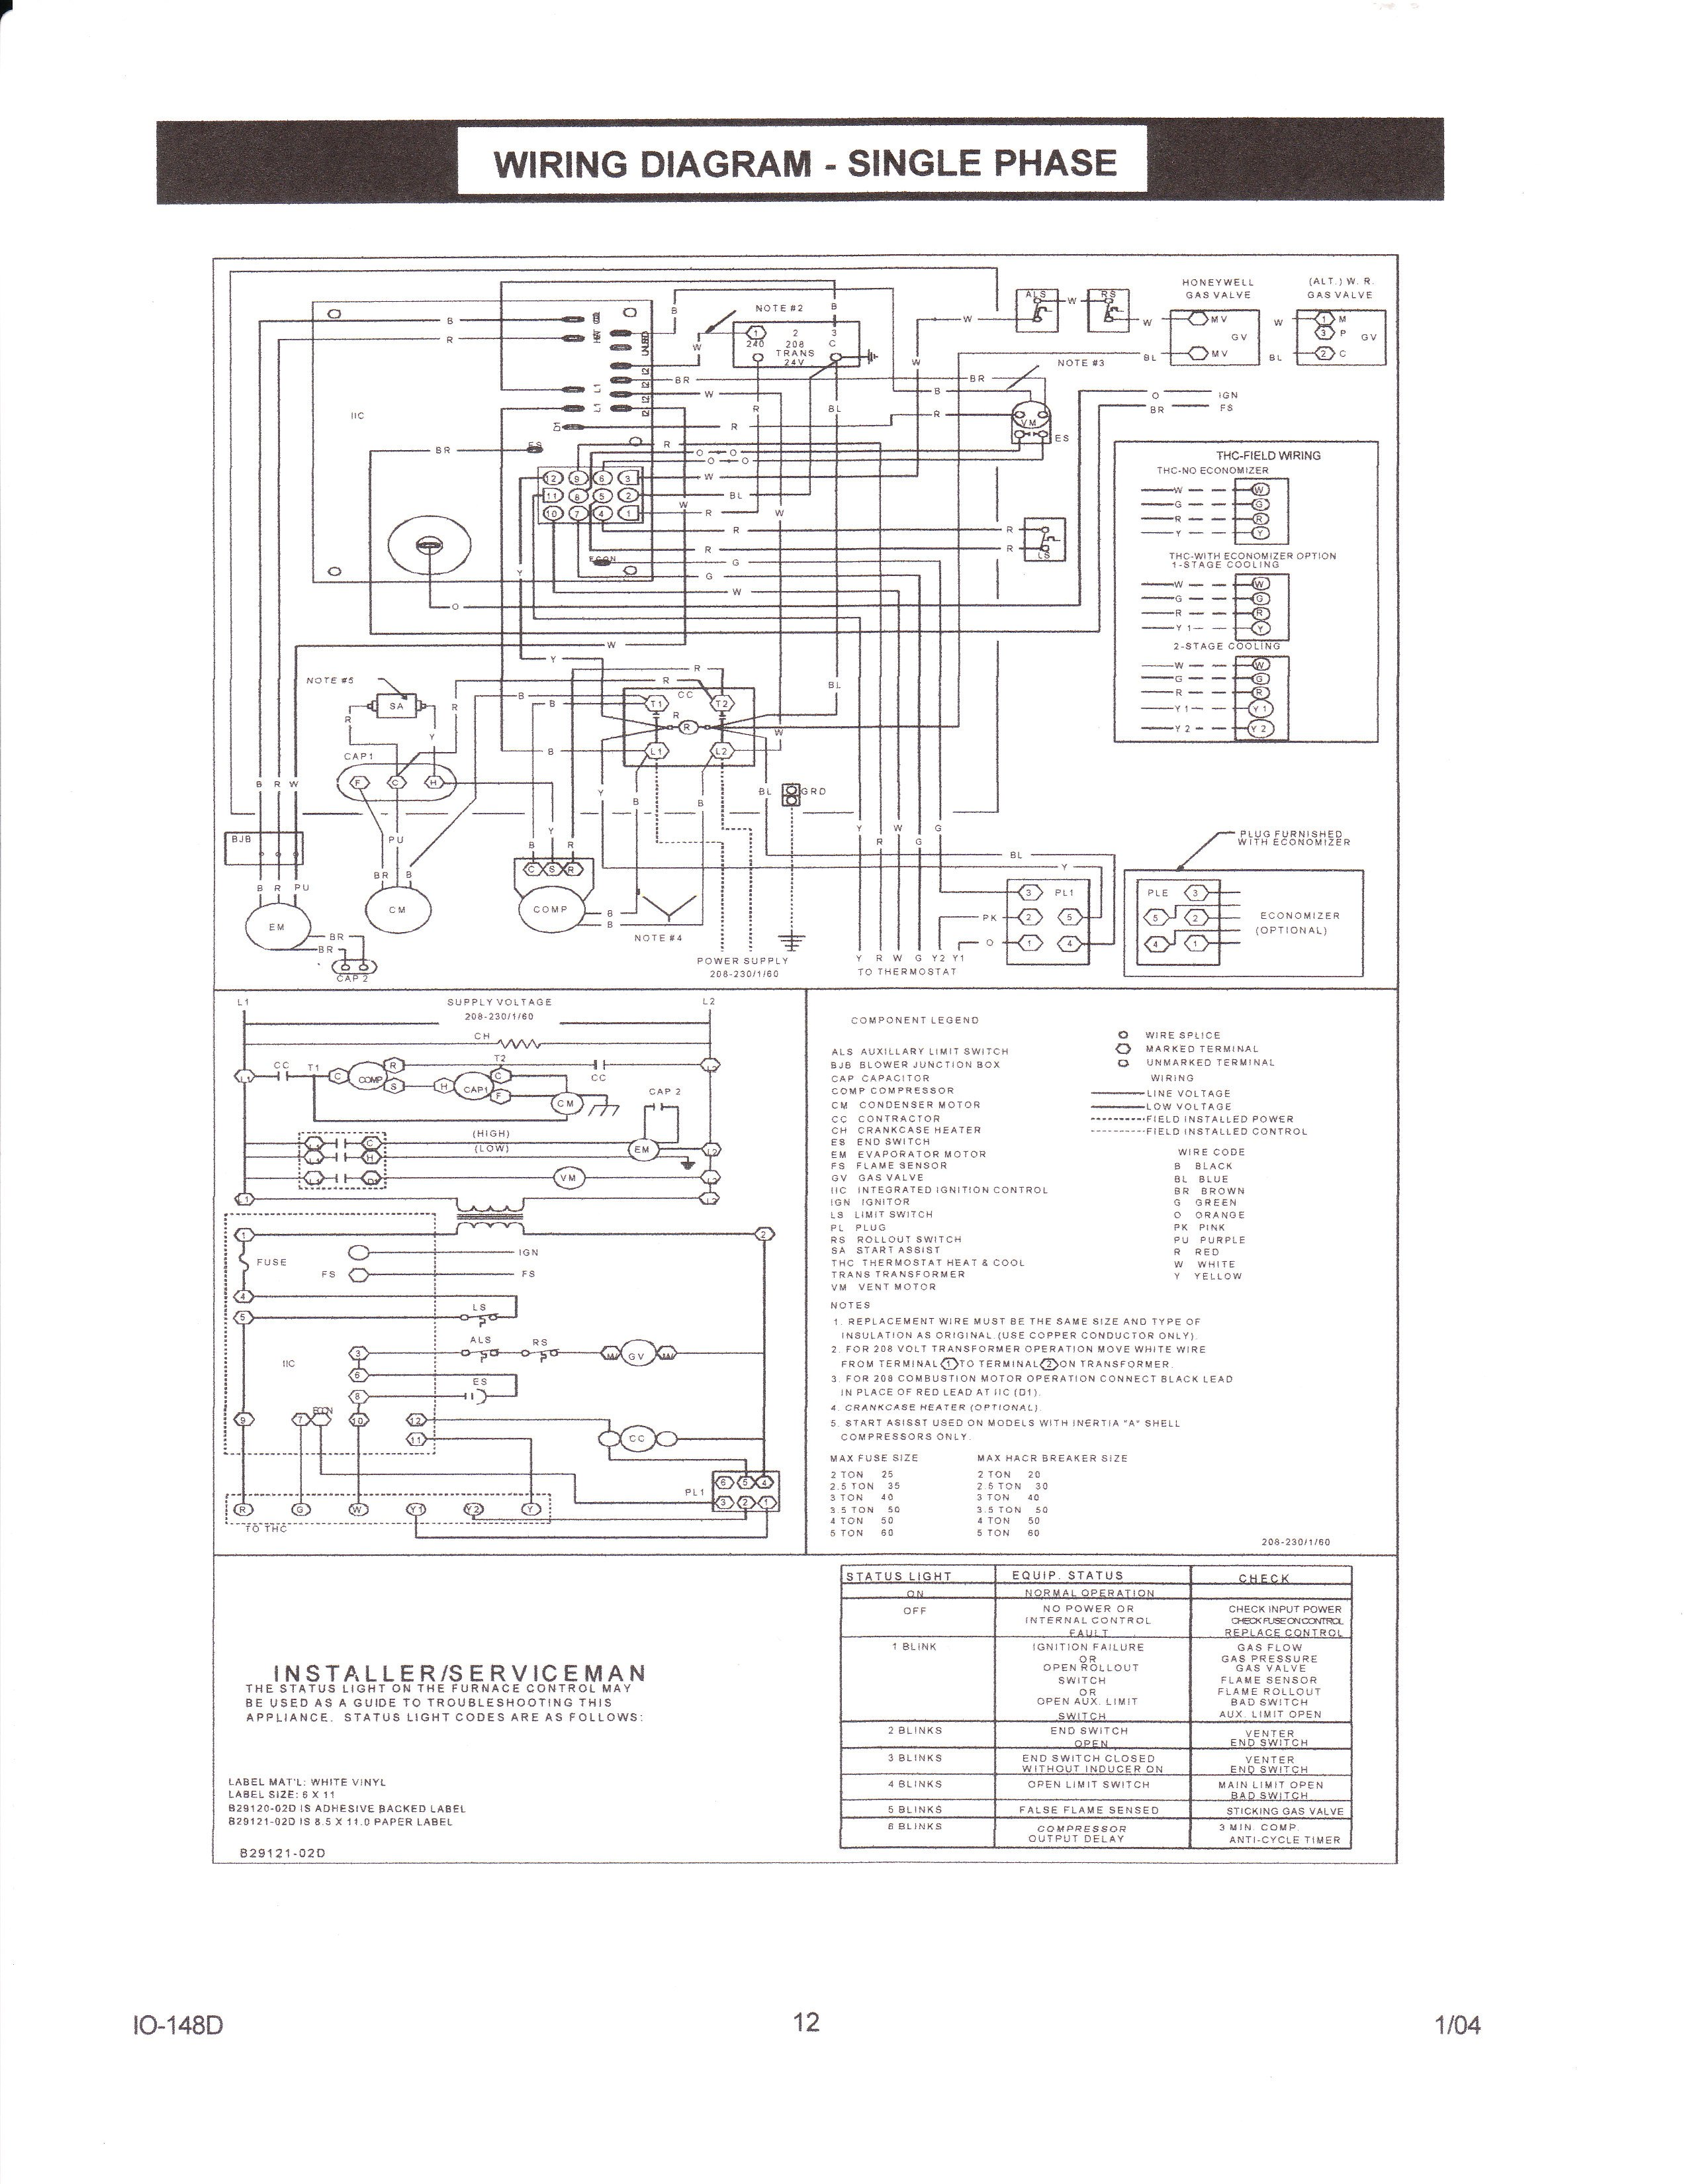 Janitrol Furnace Wiring Diagram